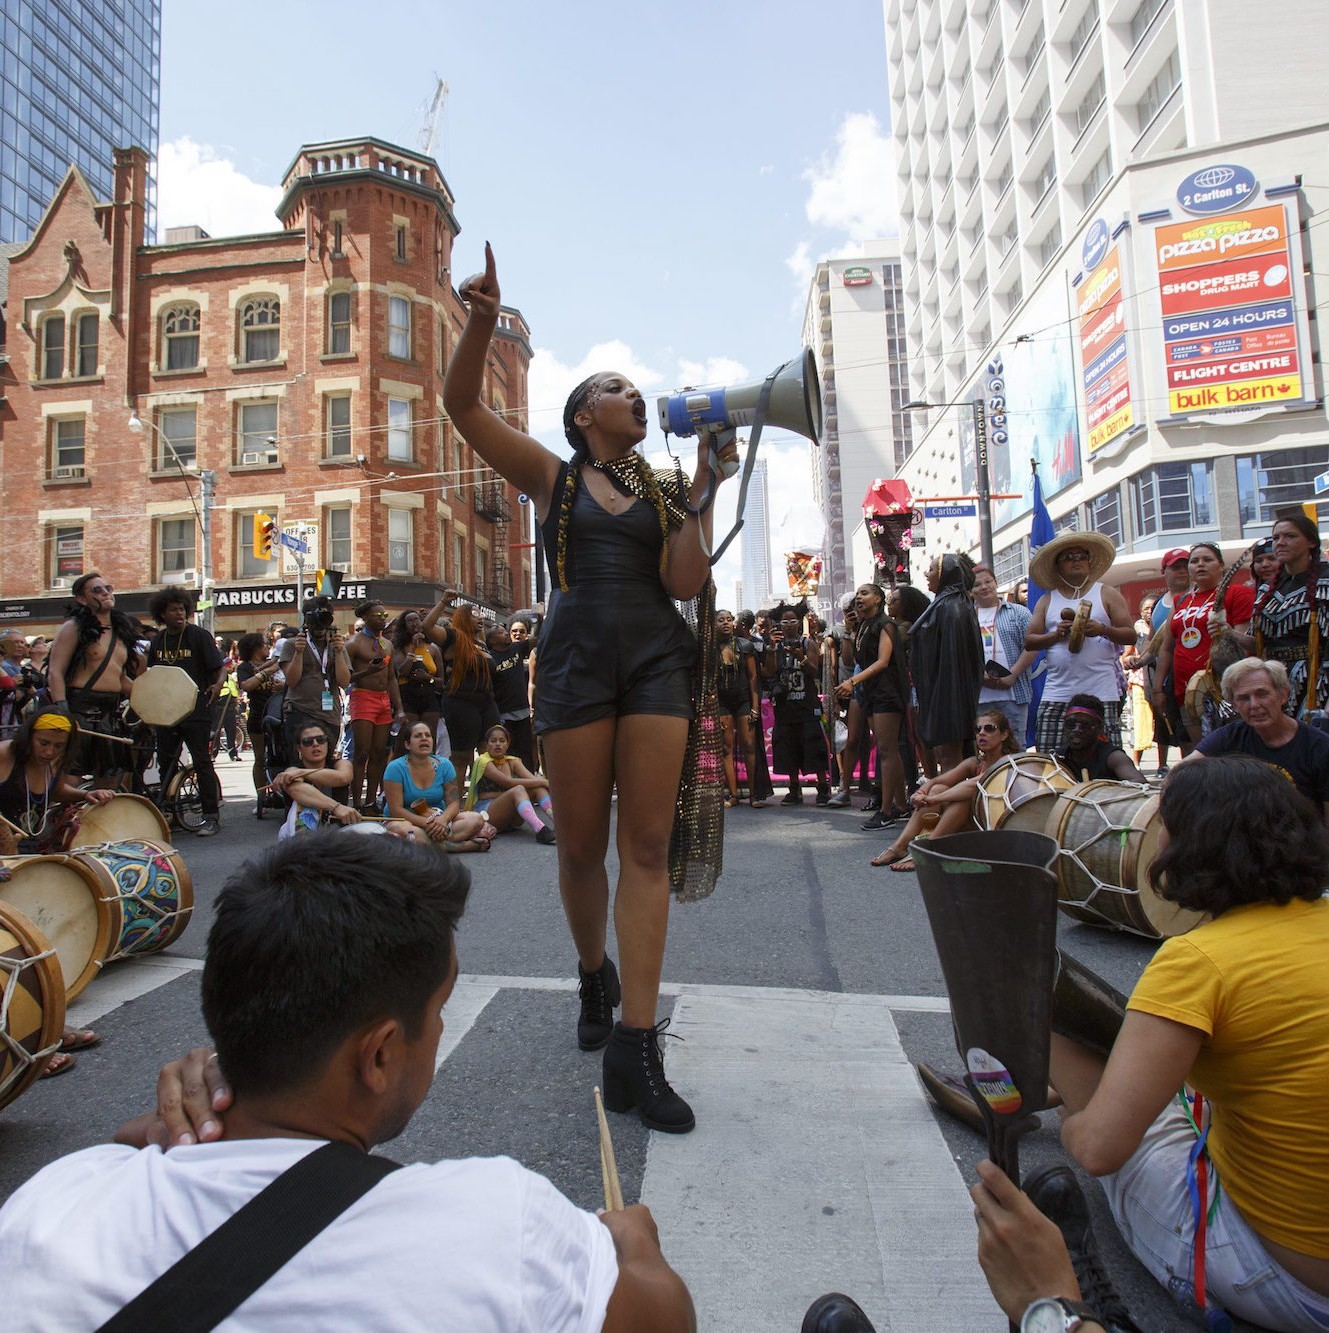 A Pride protest thrusts Black Lives Matter into the spotlight in Canada